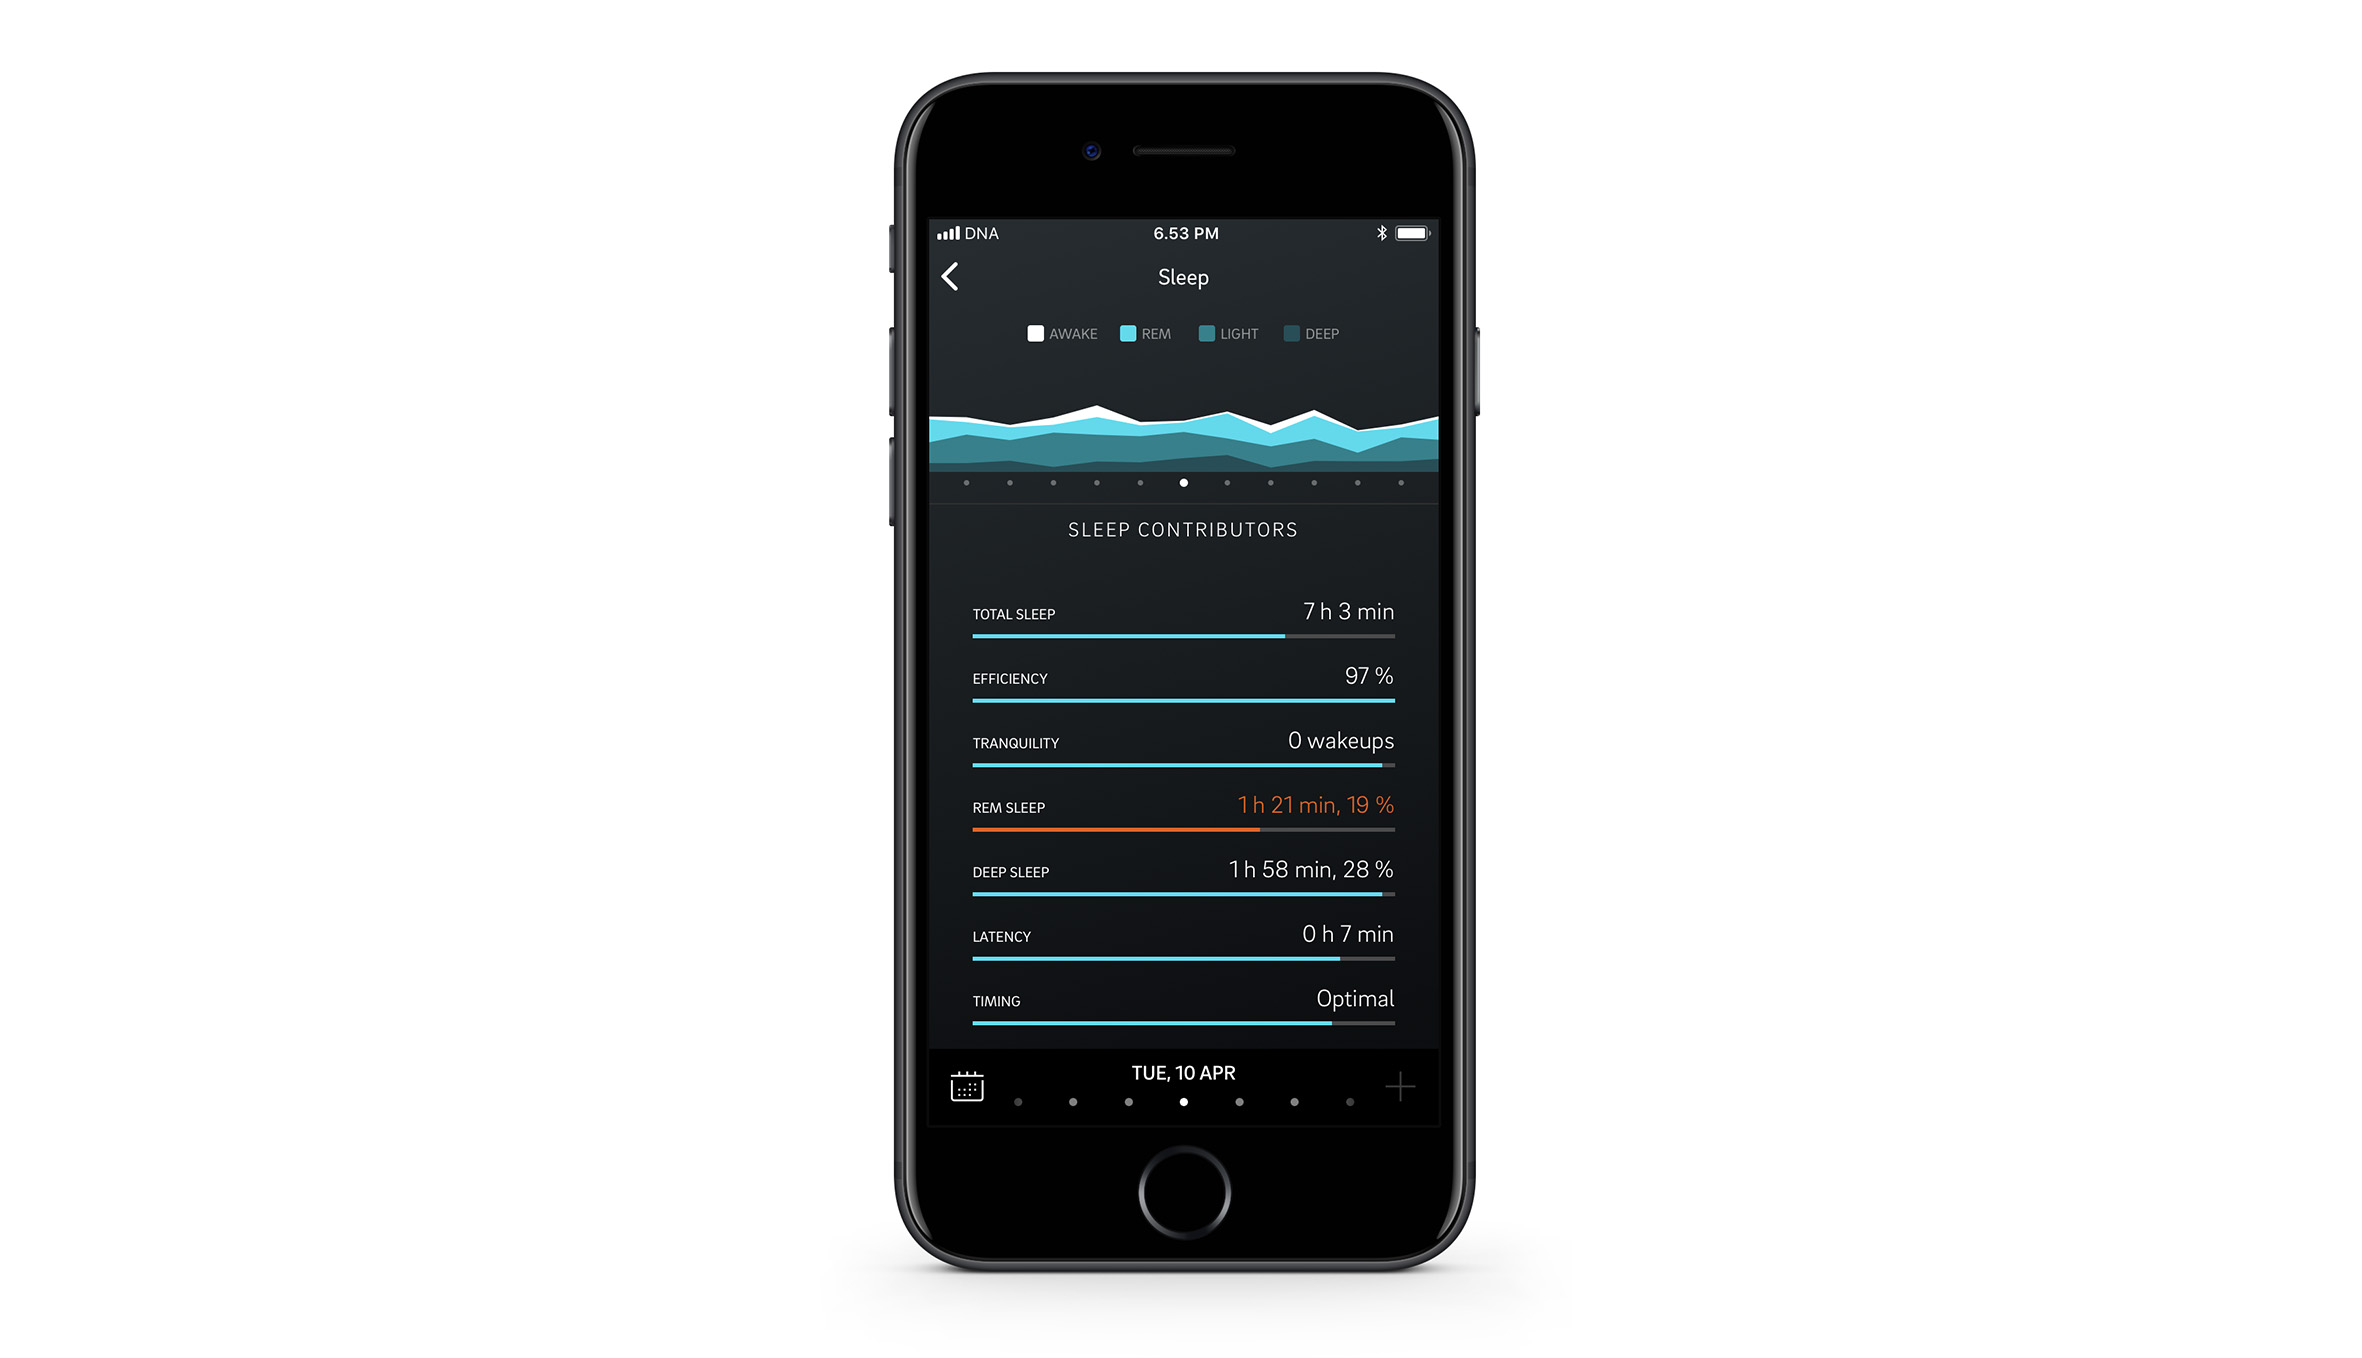 Sleep contributors on the Oura app